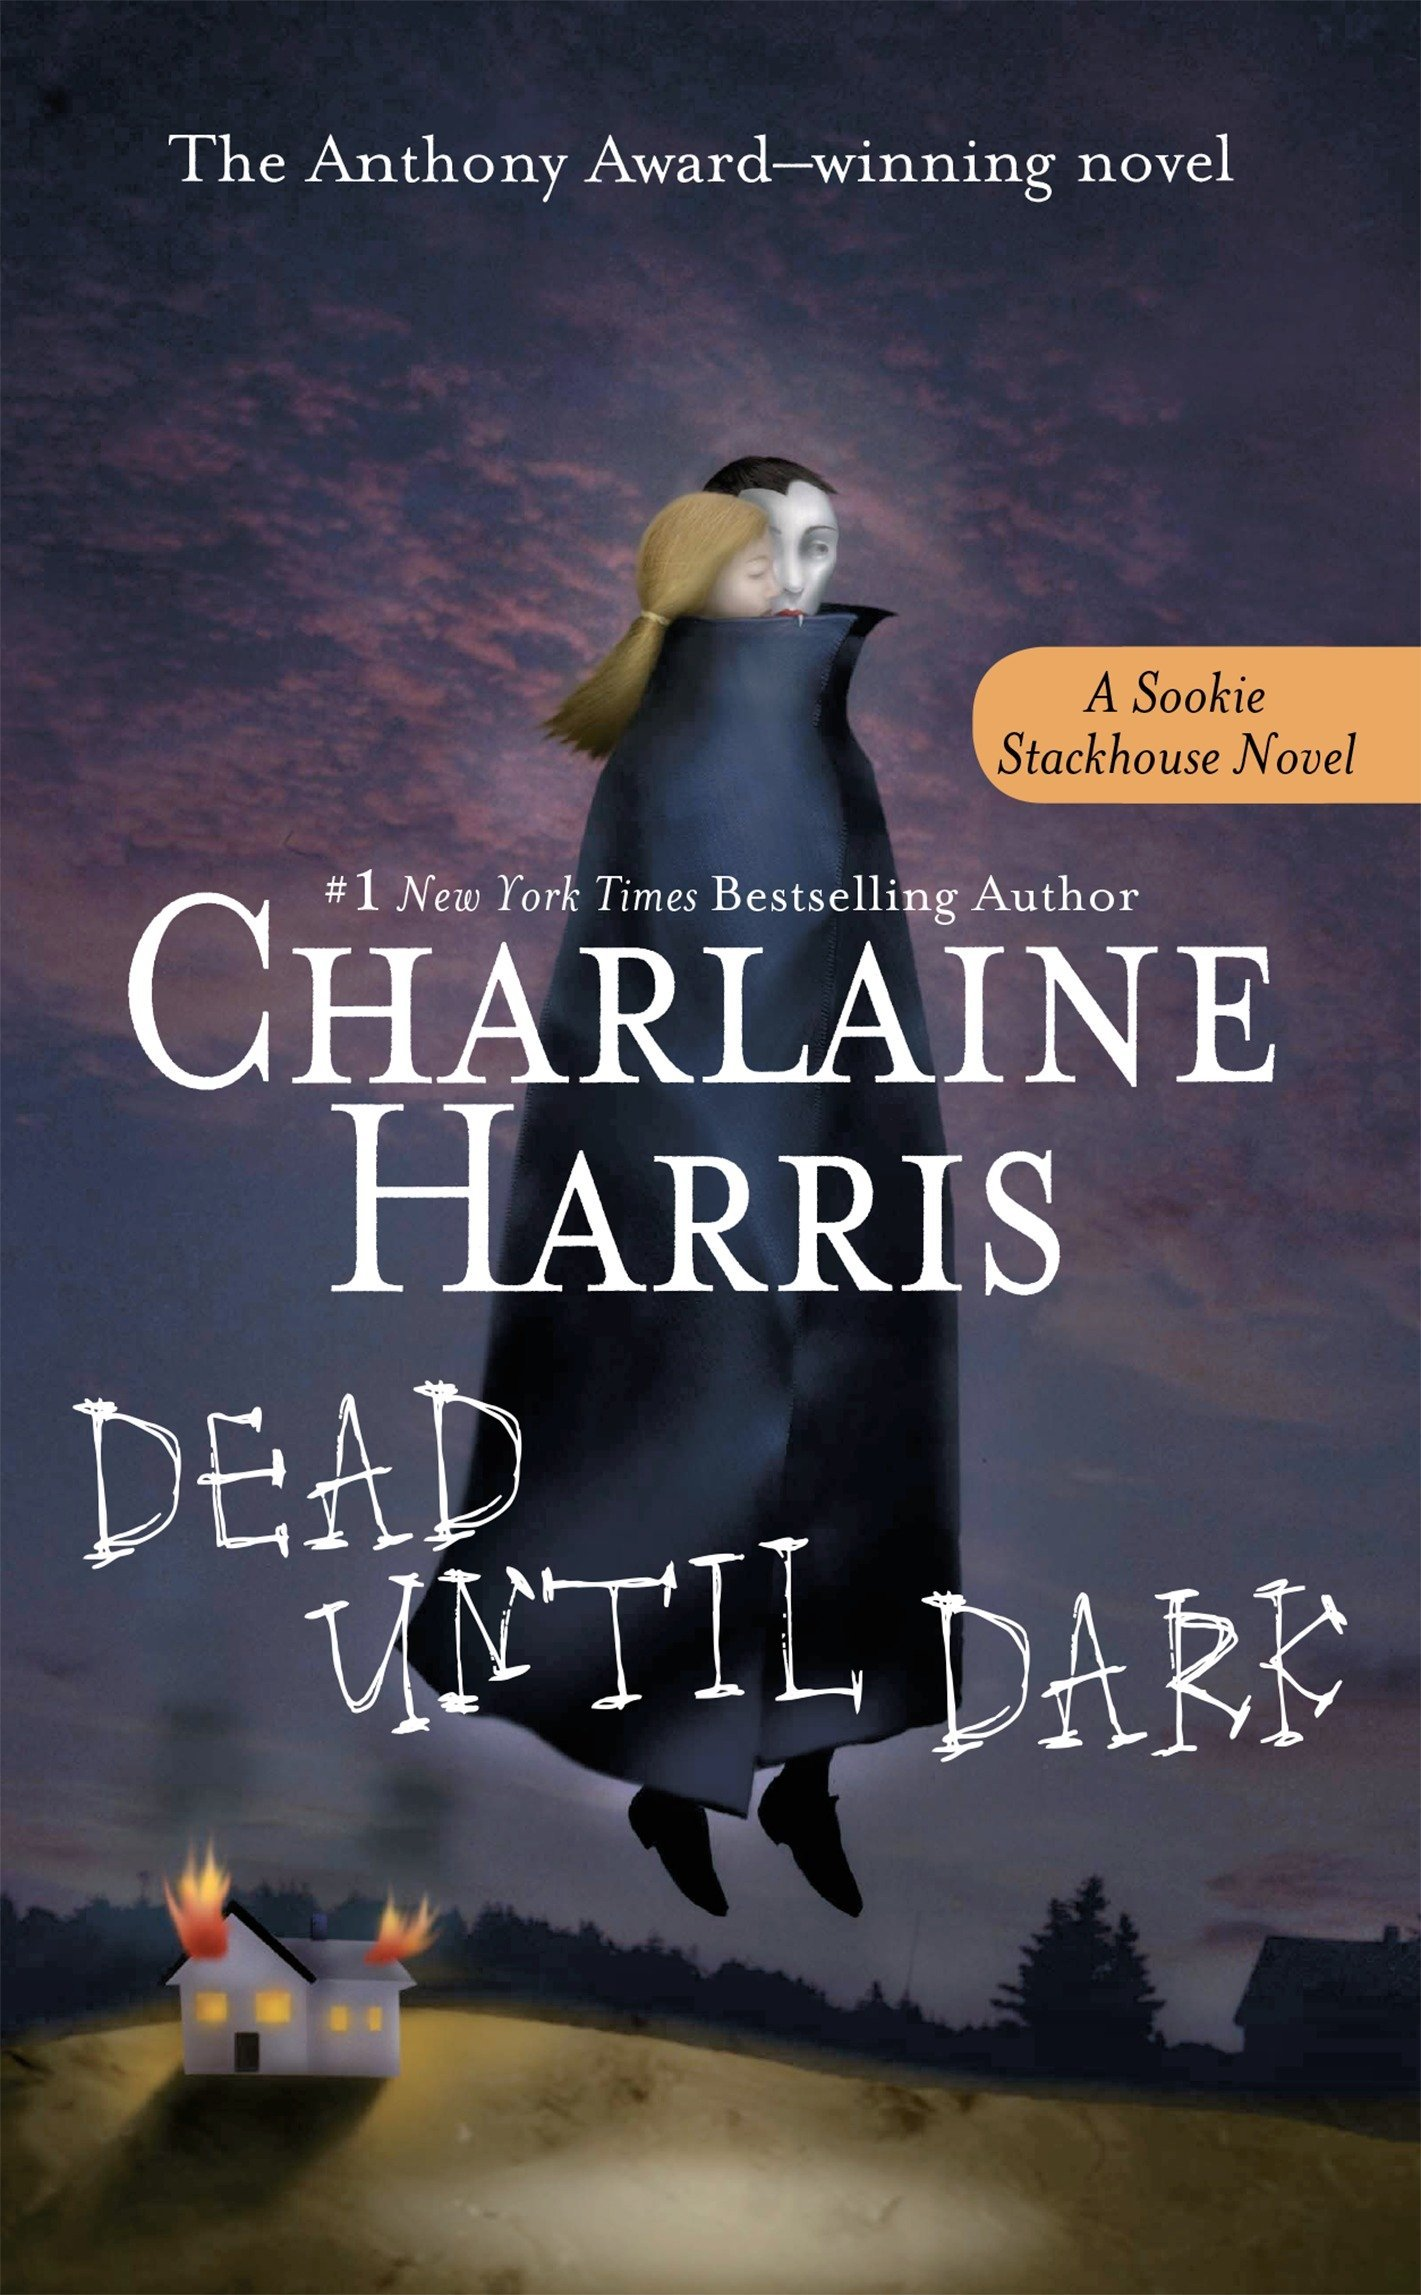 Amazon.com: Dead Until Dark (Sookie Stackhouse/True Blood, Book 1) (9780441008537): Harris, Charlaine: Books